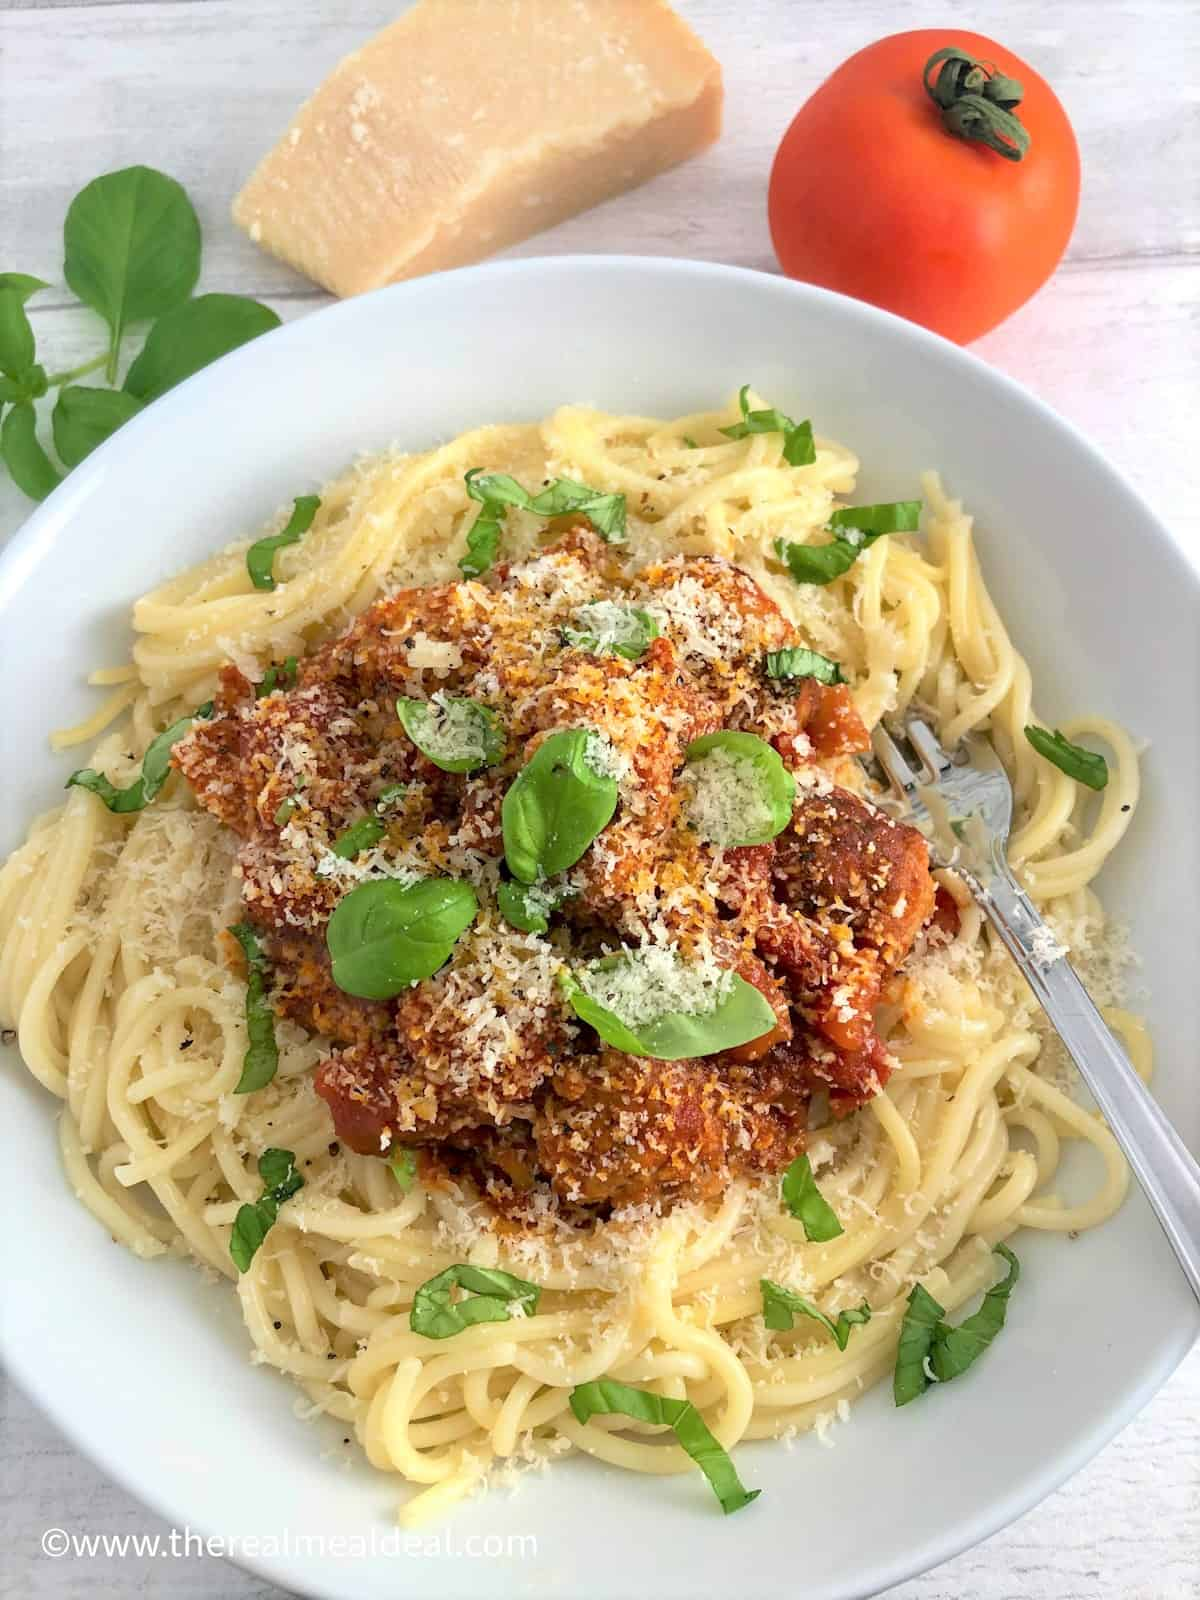 pork meatballs in a tomato sauce on top of spaghetti topped with parmesan cheese and fresh basil